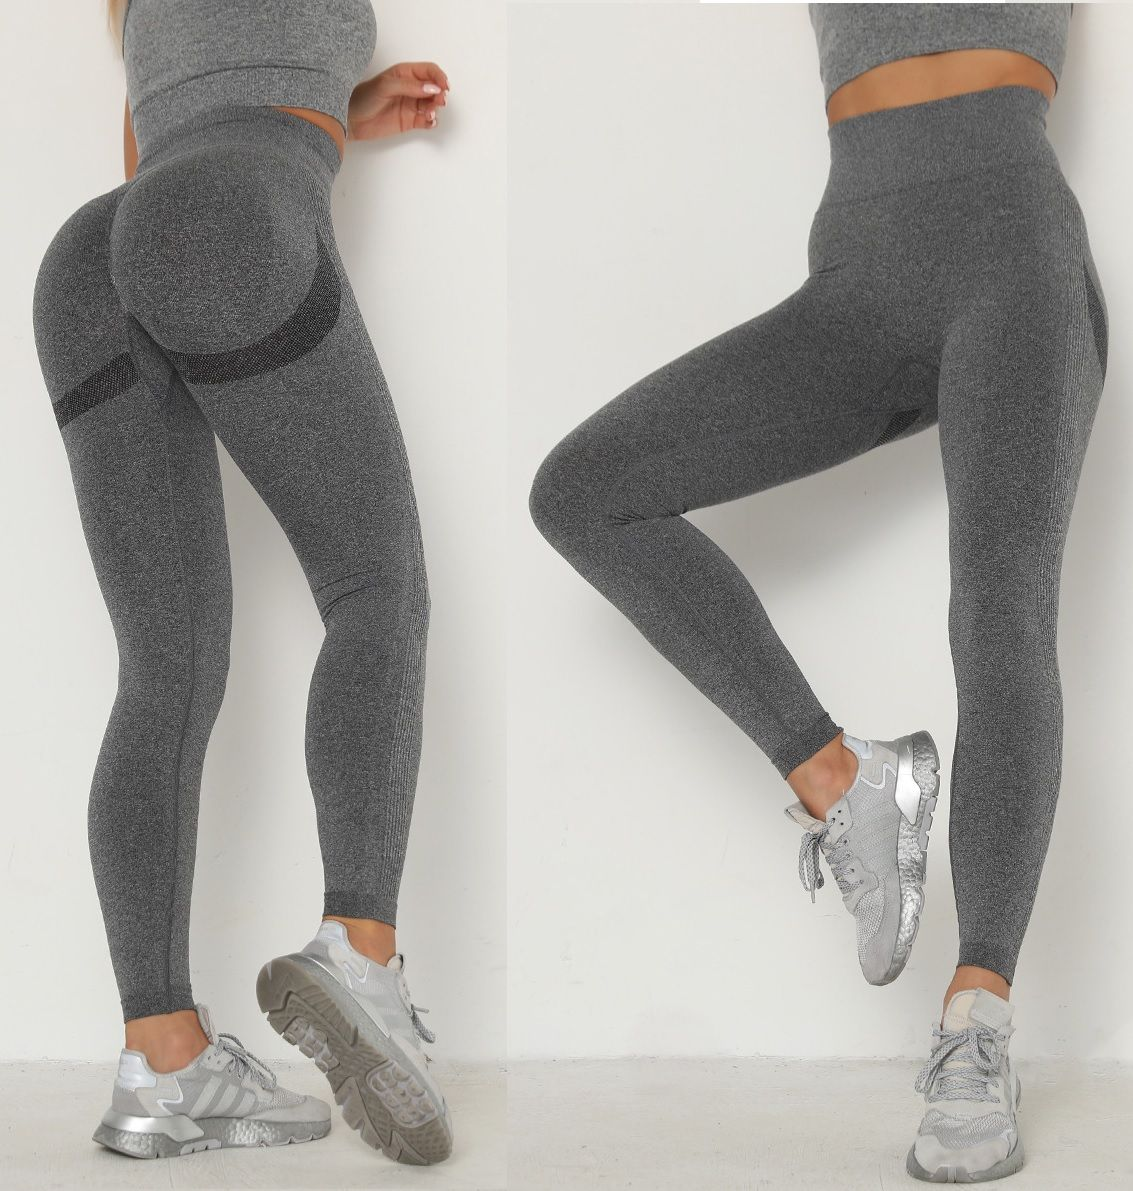 Ever wanna be super comfy but still look good? Us too which is why we have brought you these beautiful trendy